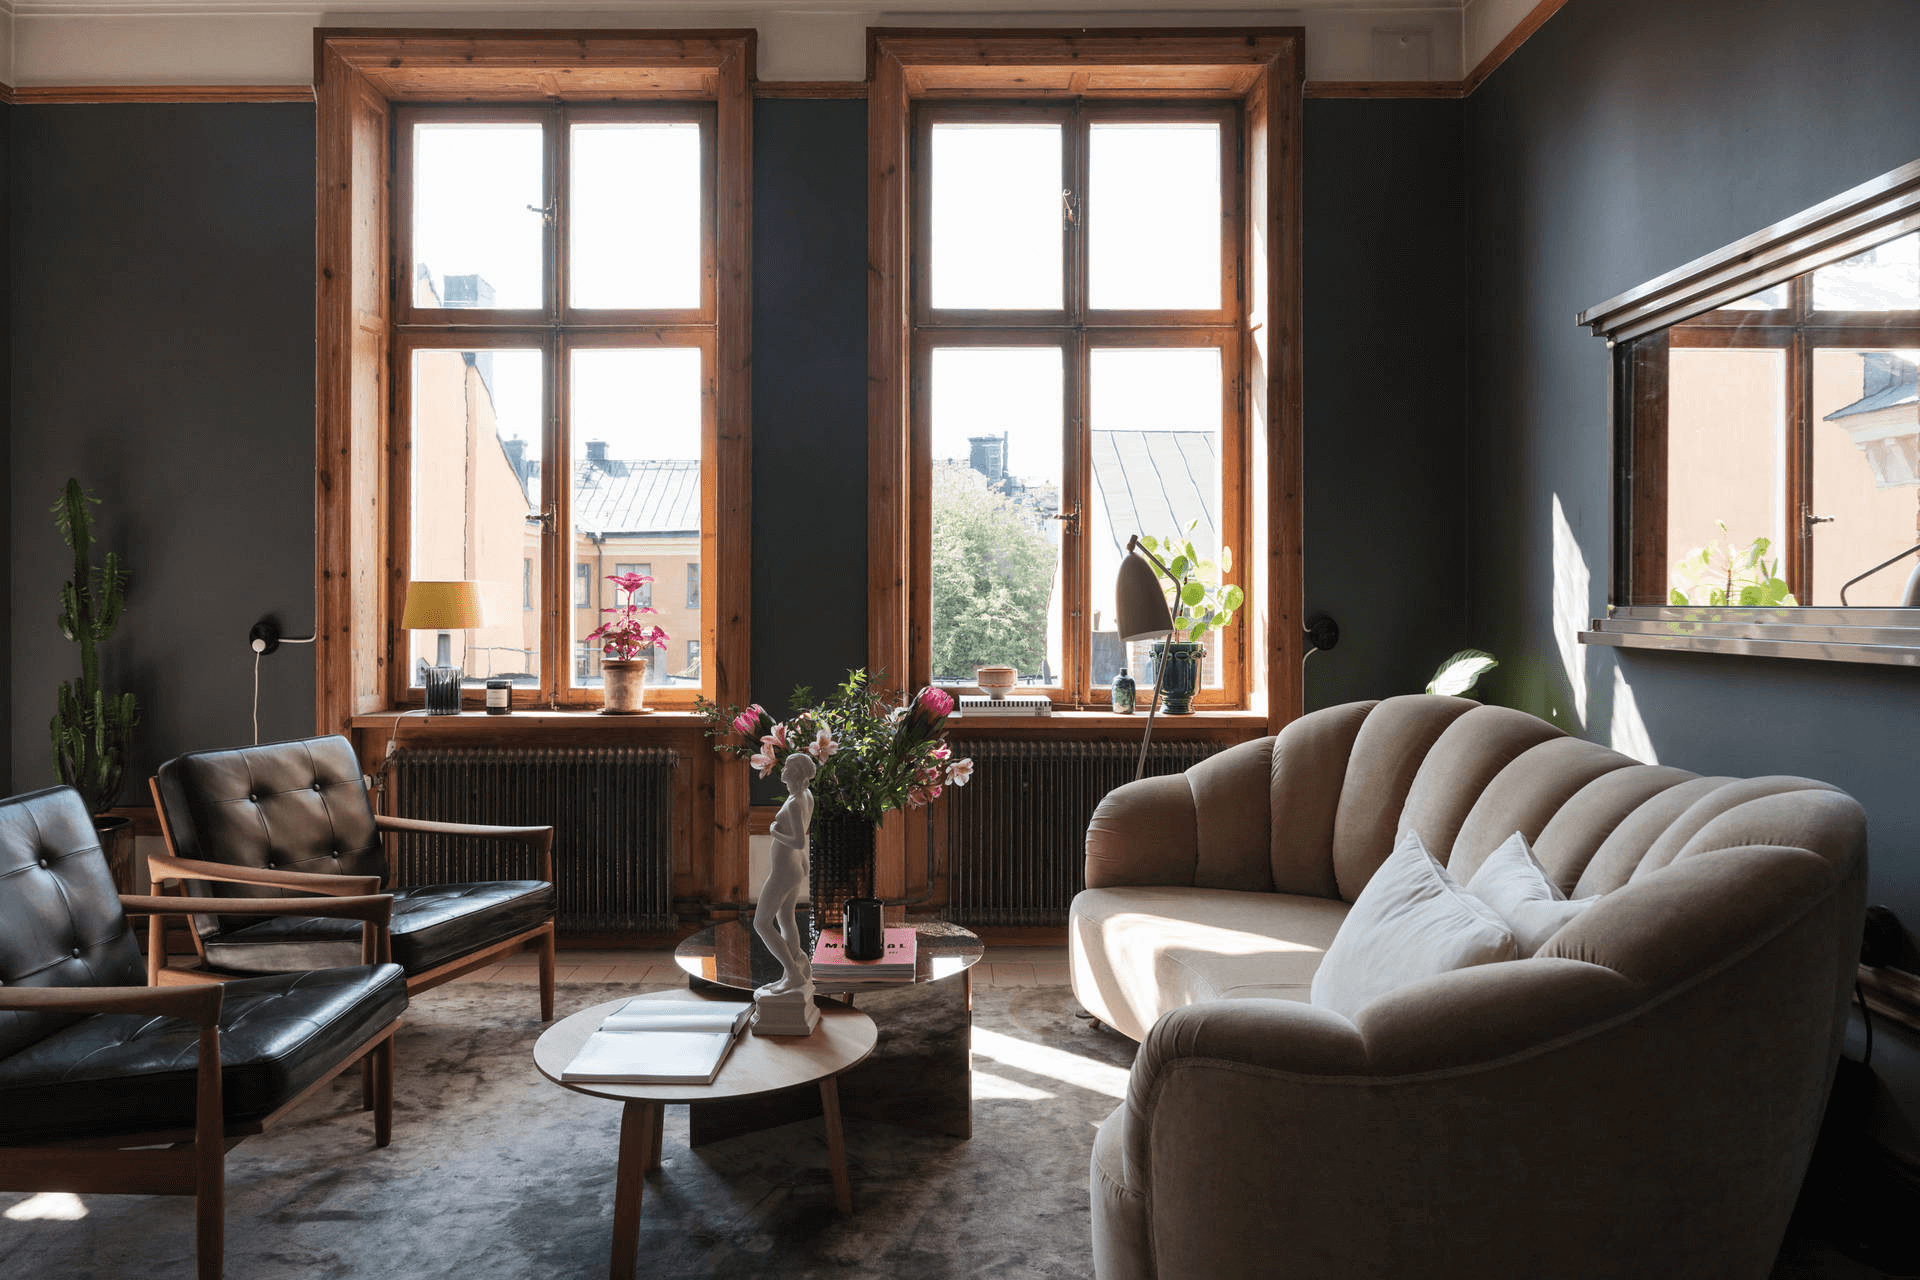 this is a Scandinavian styled apartment with minimal and clean designs with a blend of wooden accents